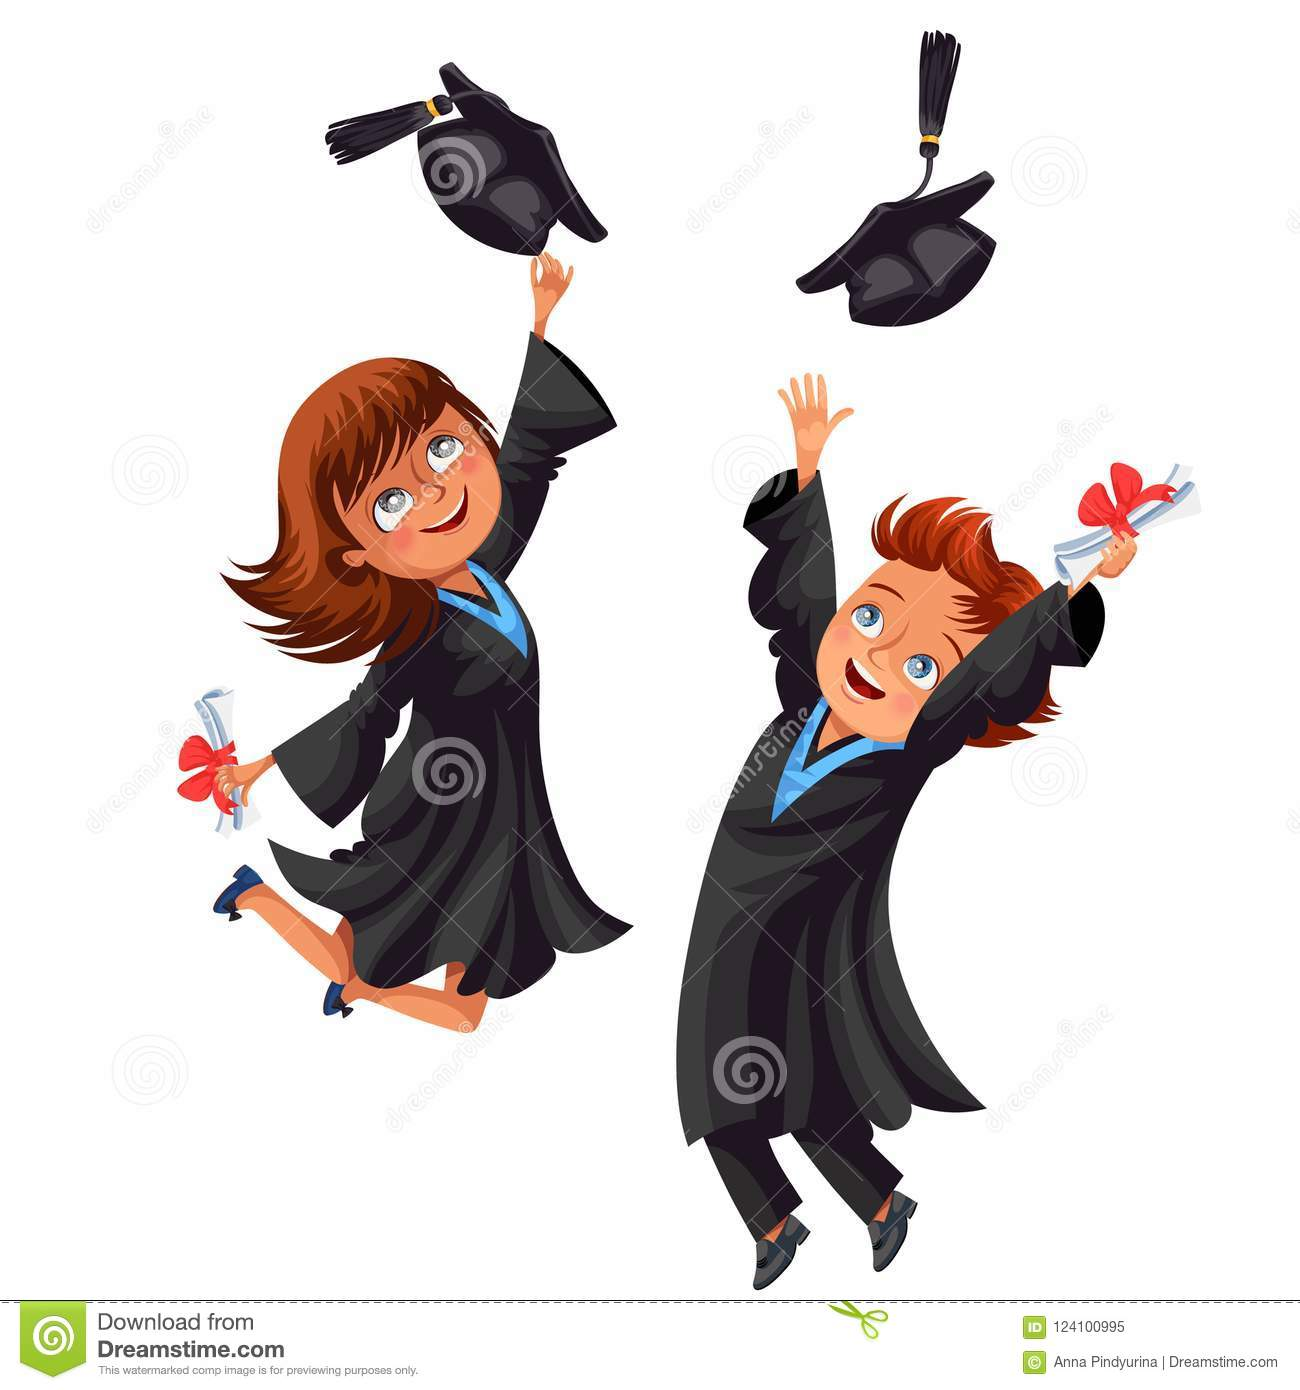 College Students Poster With Happy Graduates Of Celebrate High School Graduation Boys And Girls In Gowns Caps Diplomas Vector Illustration